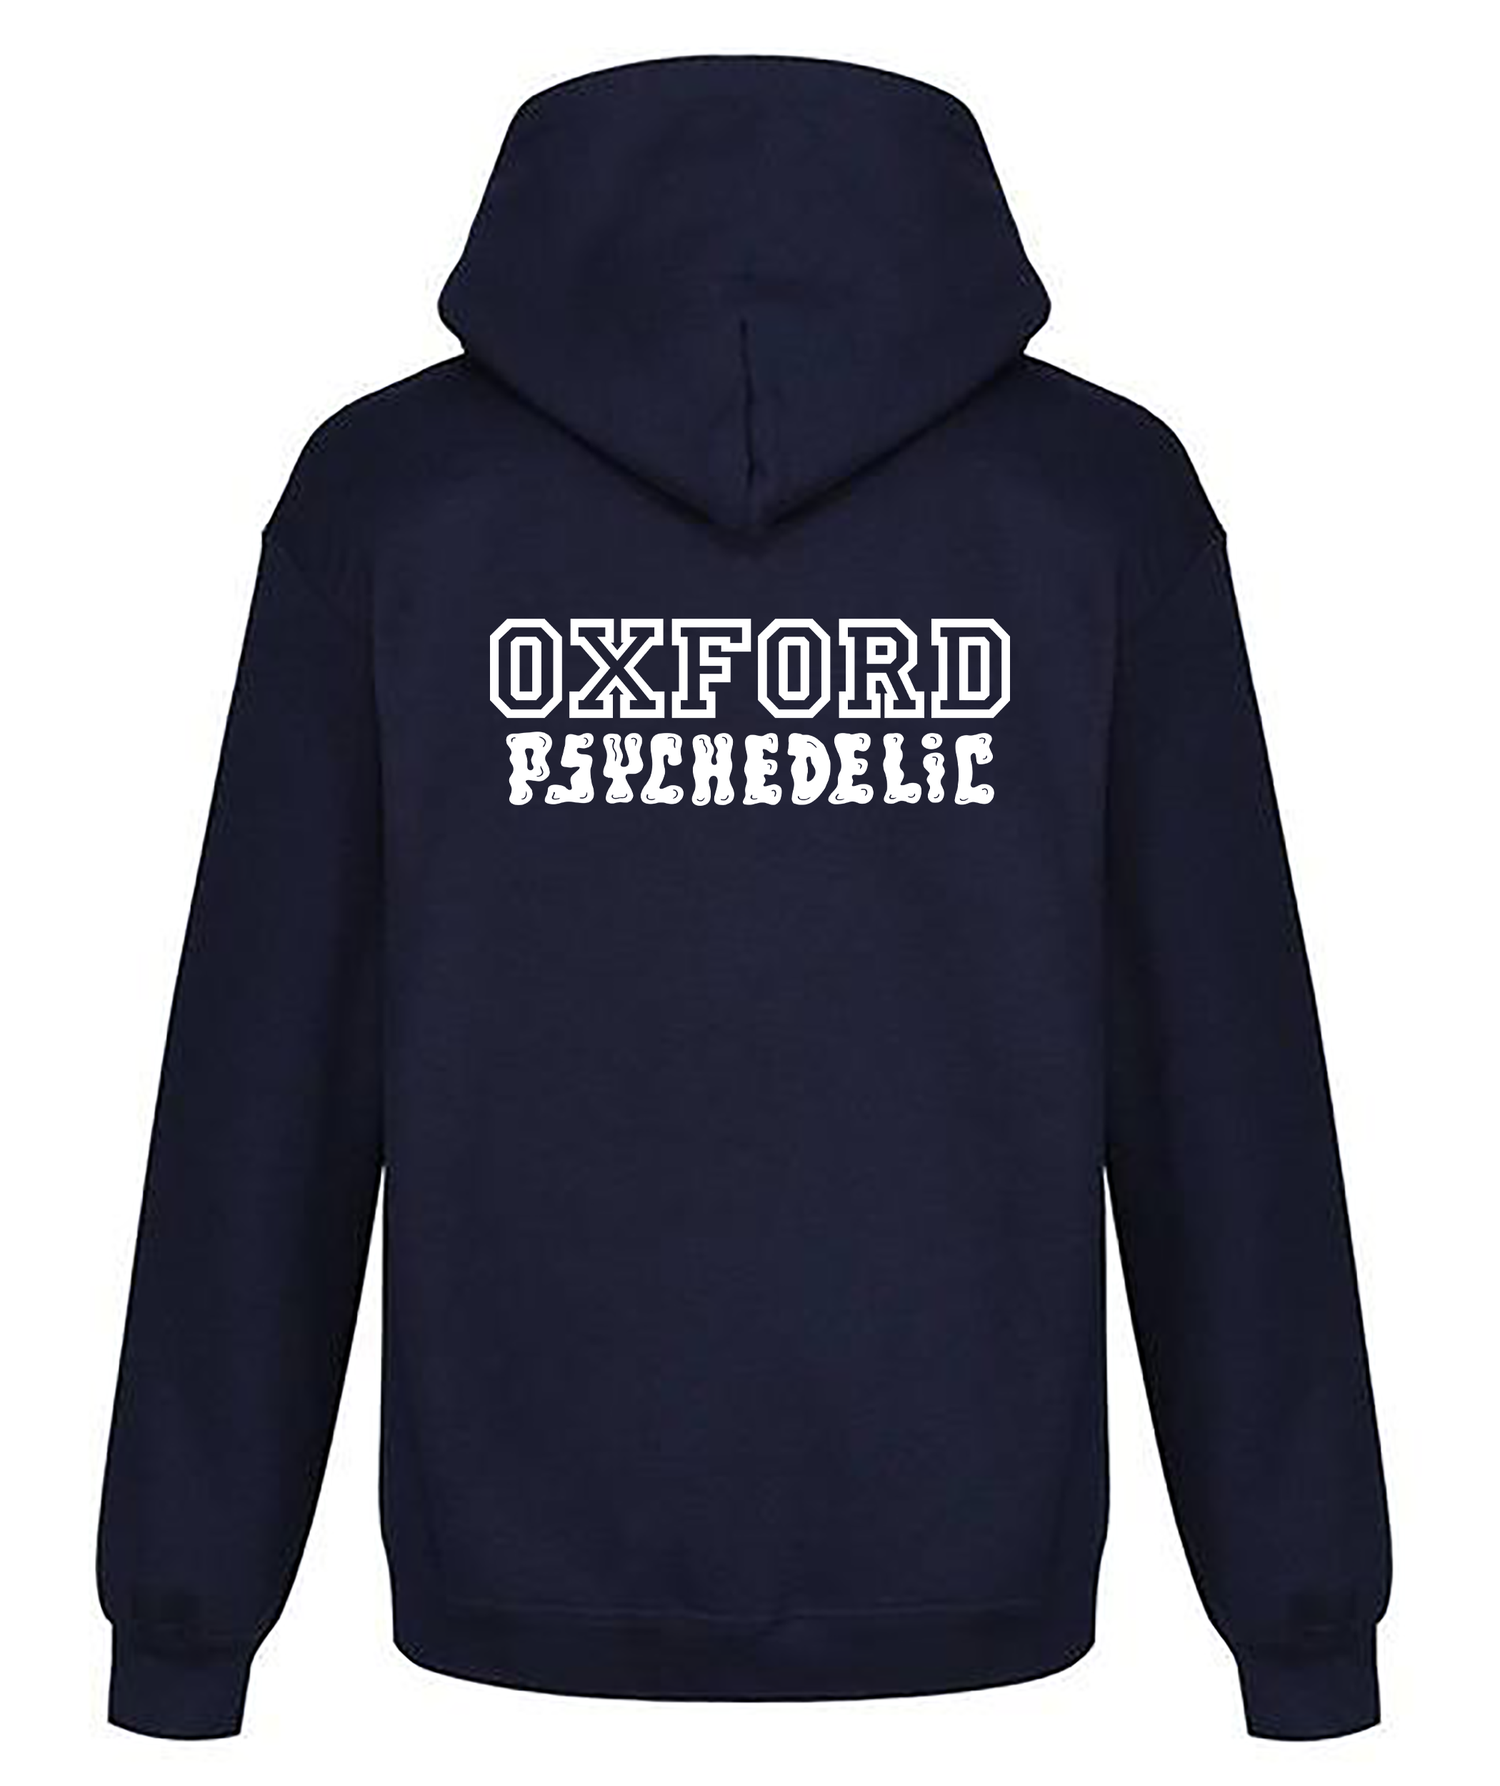 Image of Pre-order varsity unisex pull-over hoodie navy (certified organic cotton by Earth Positive)